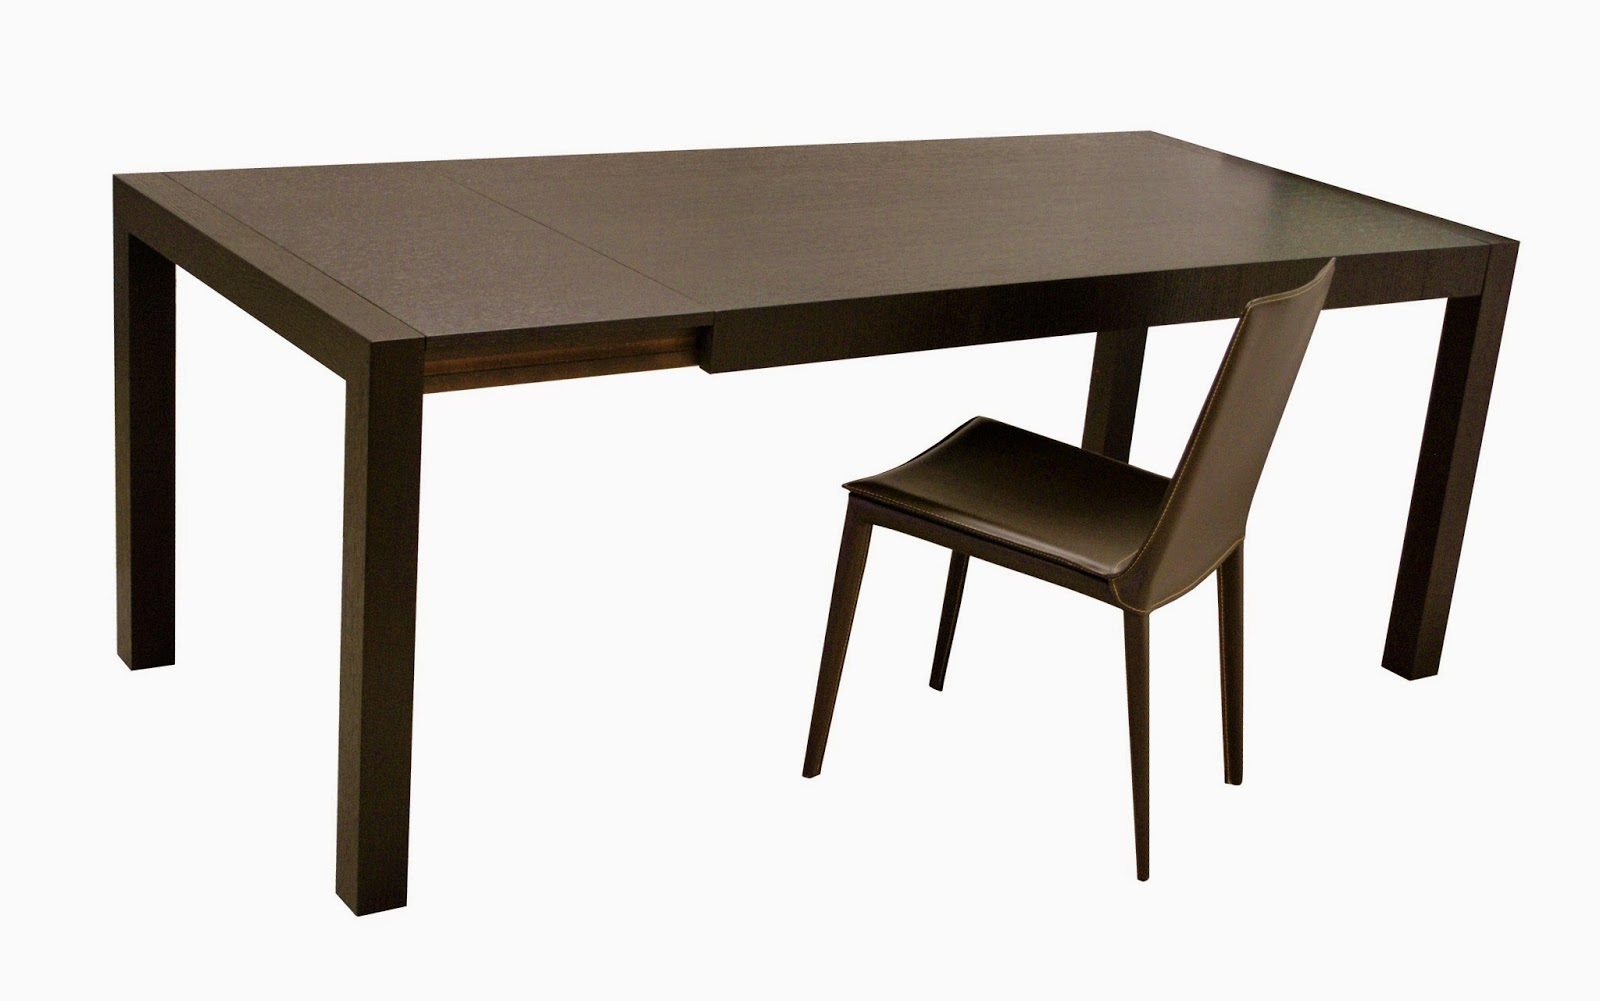 Commercial Tables and Chairs